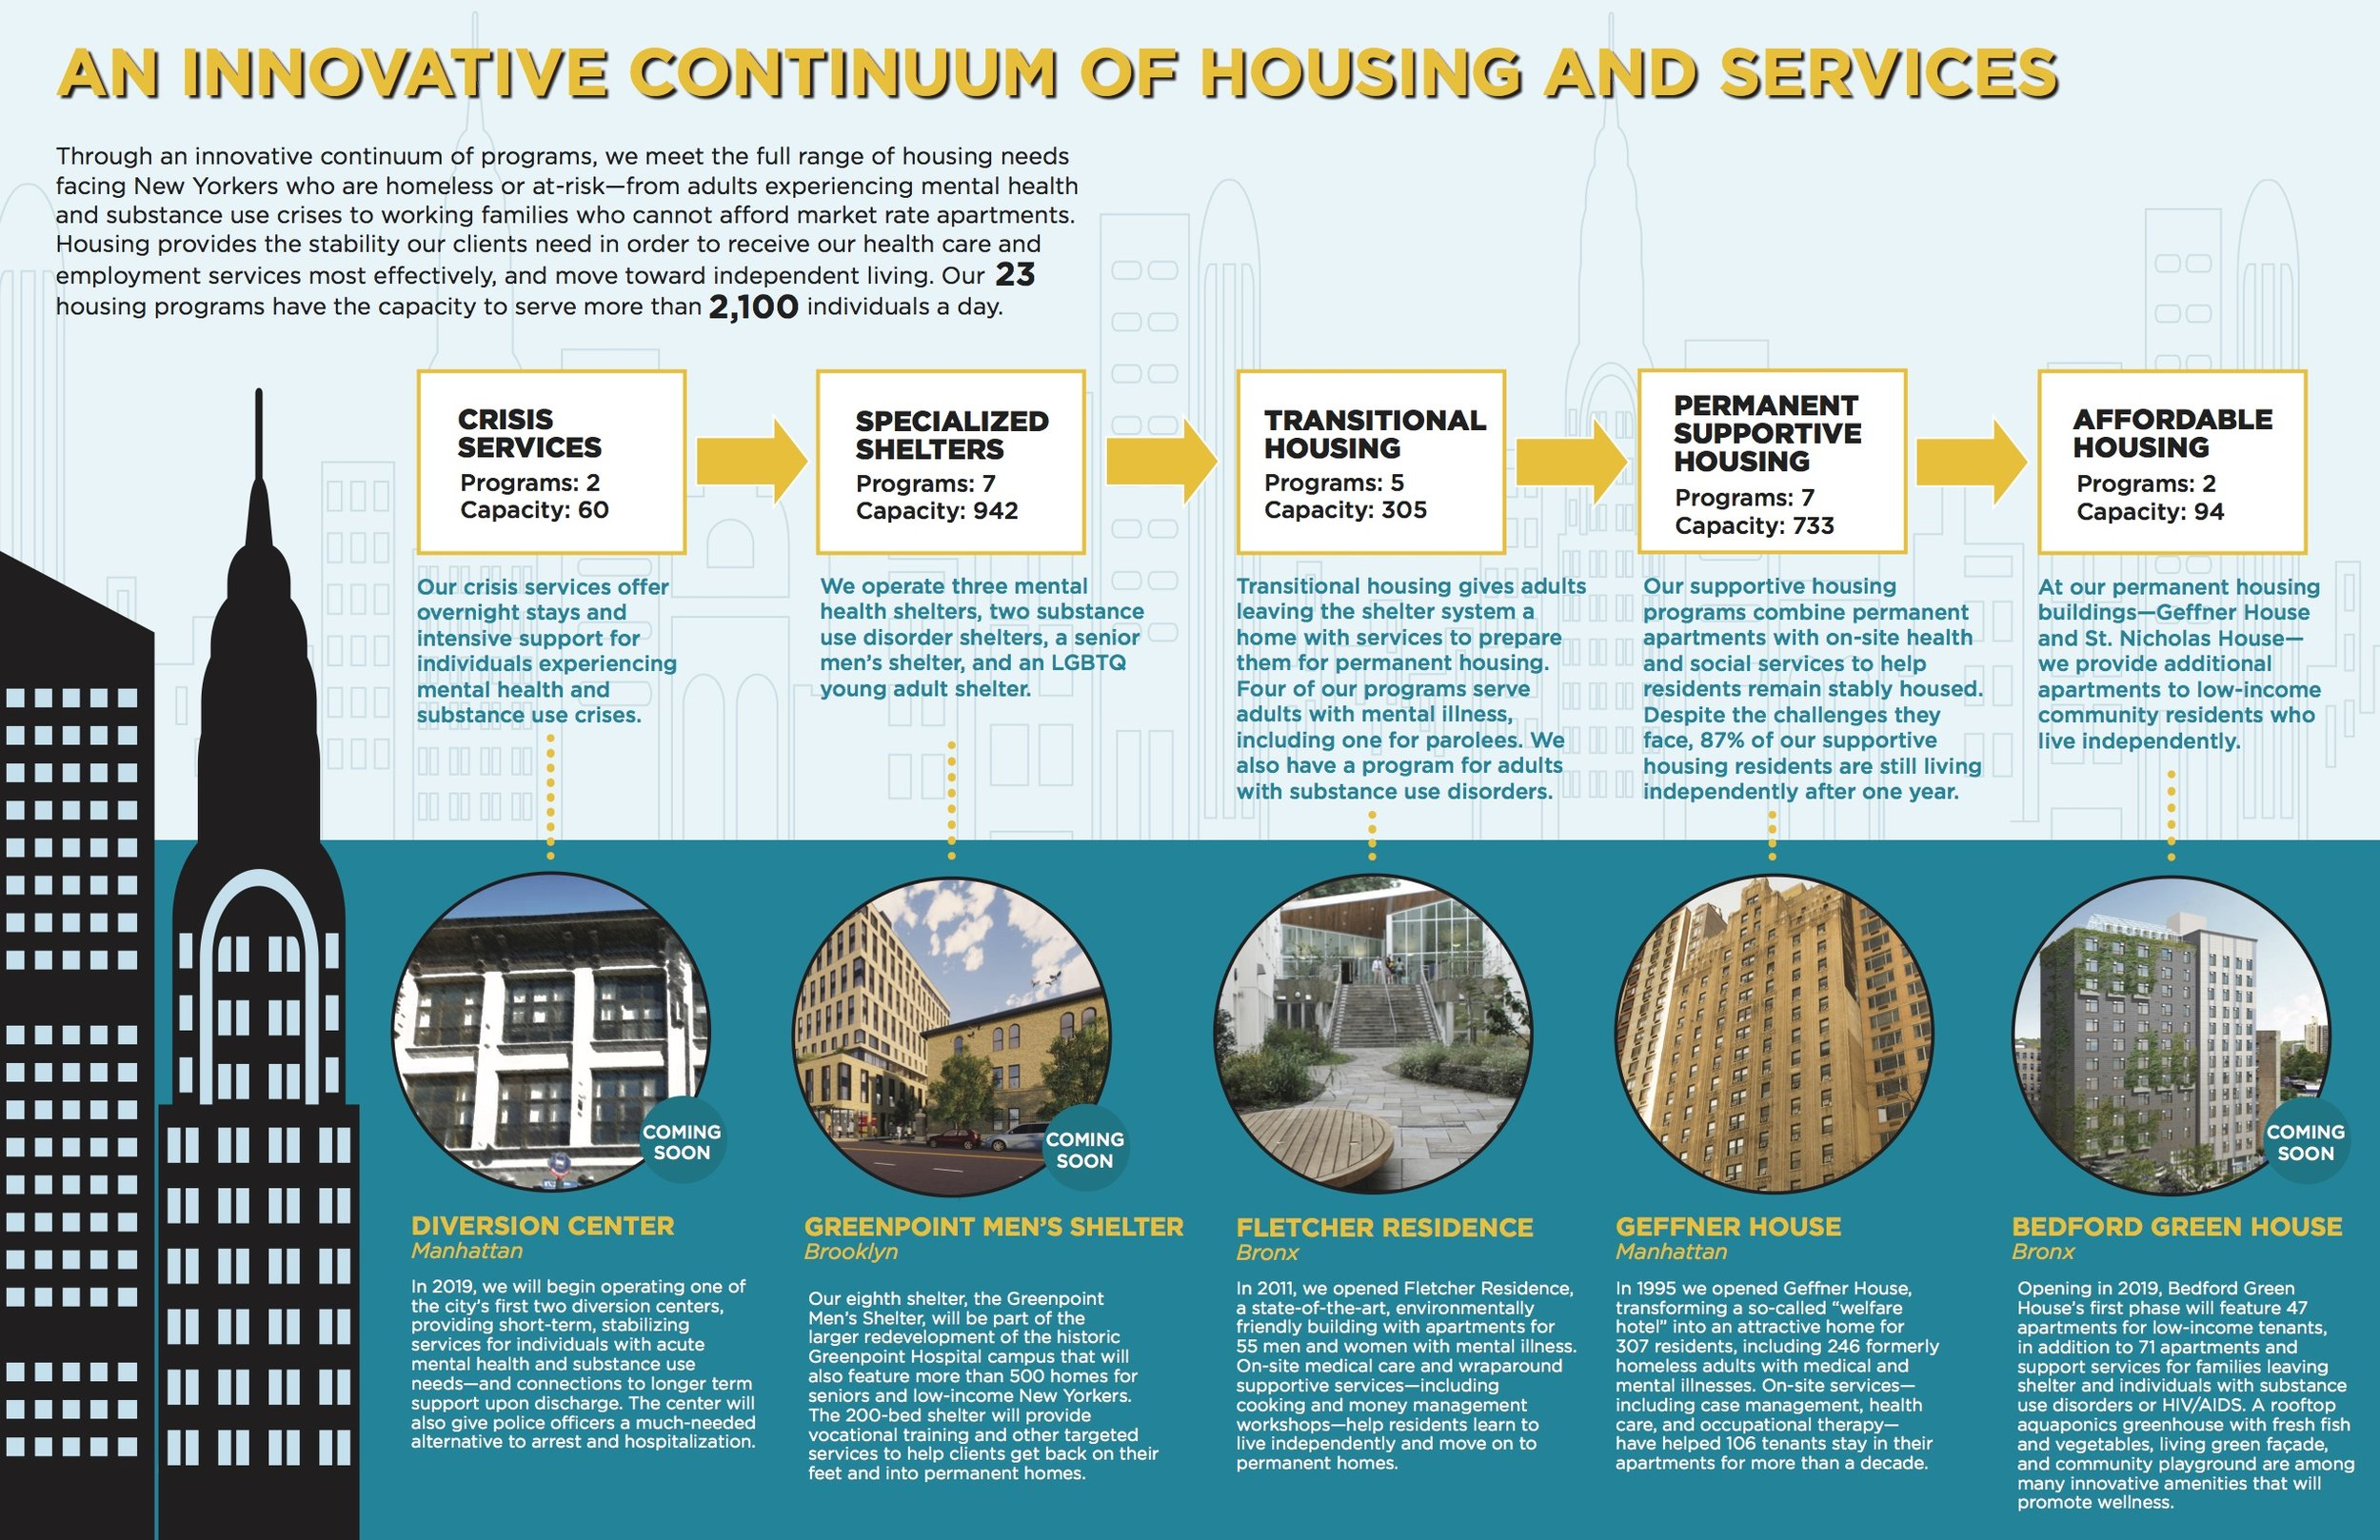 Project Renewal's Innovative Continuum of Housing and Services